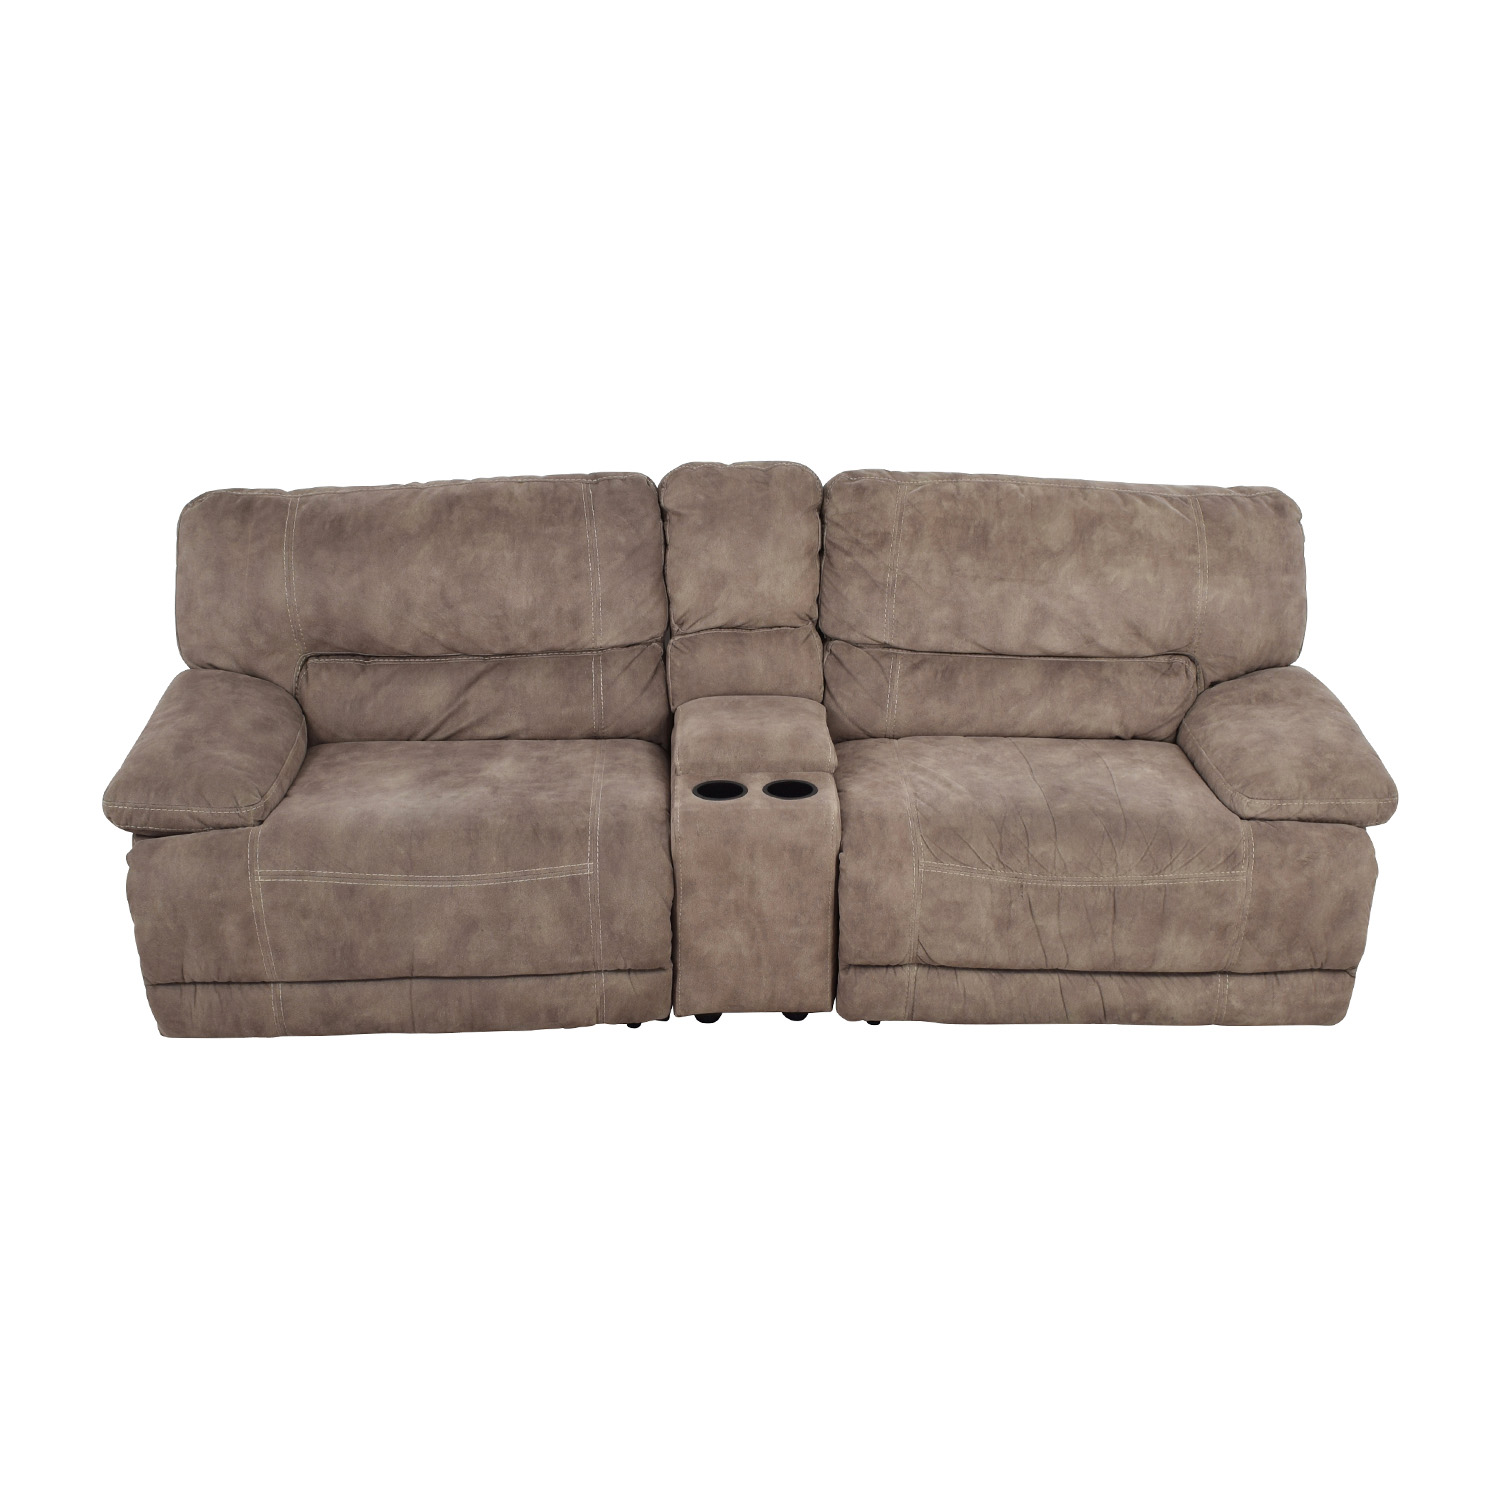 Raymour and Flanagan Raymour & Flanigan Grey Power Recliner with Console nyc